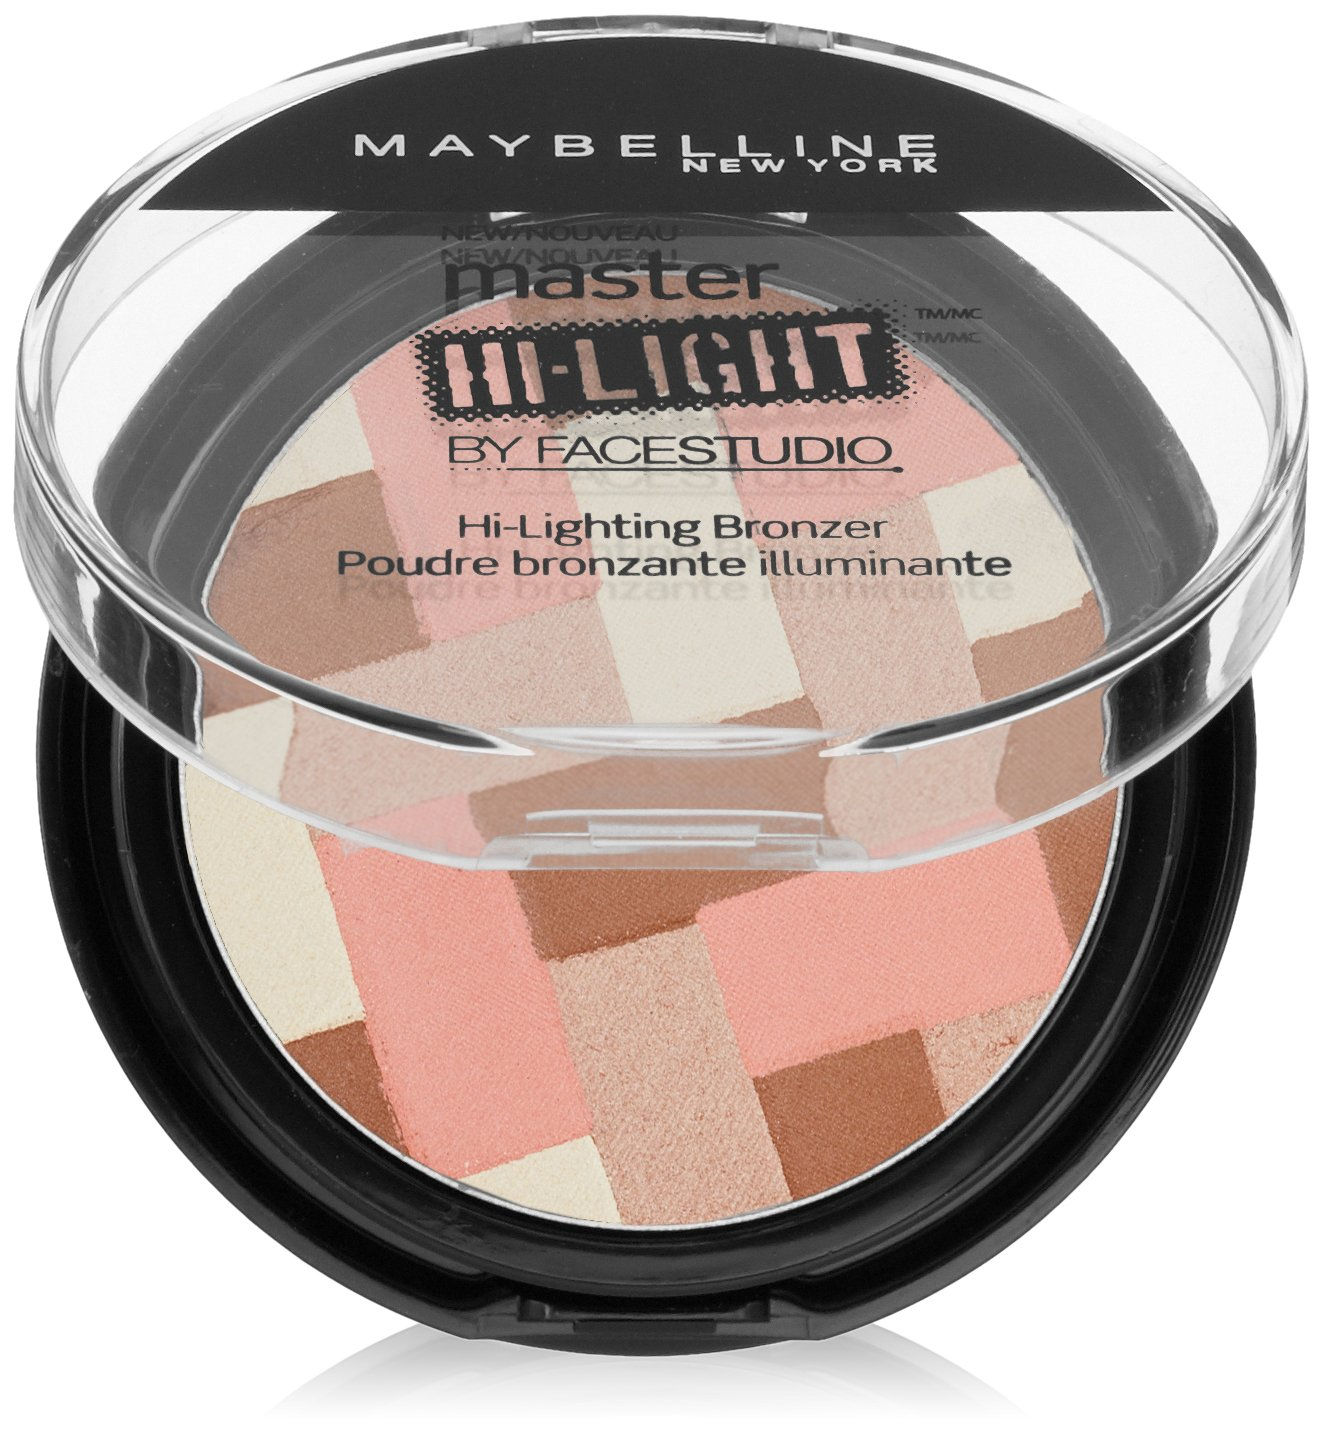 Maybelline New York Face Studio Master Hi-Light Bronzer, Light Bronze, 0.31 Ounce